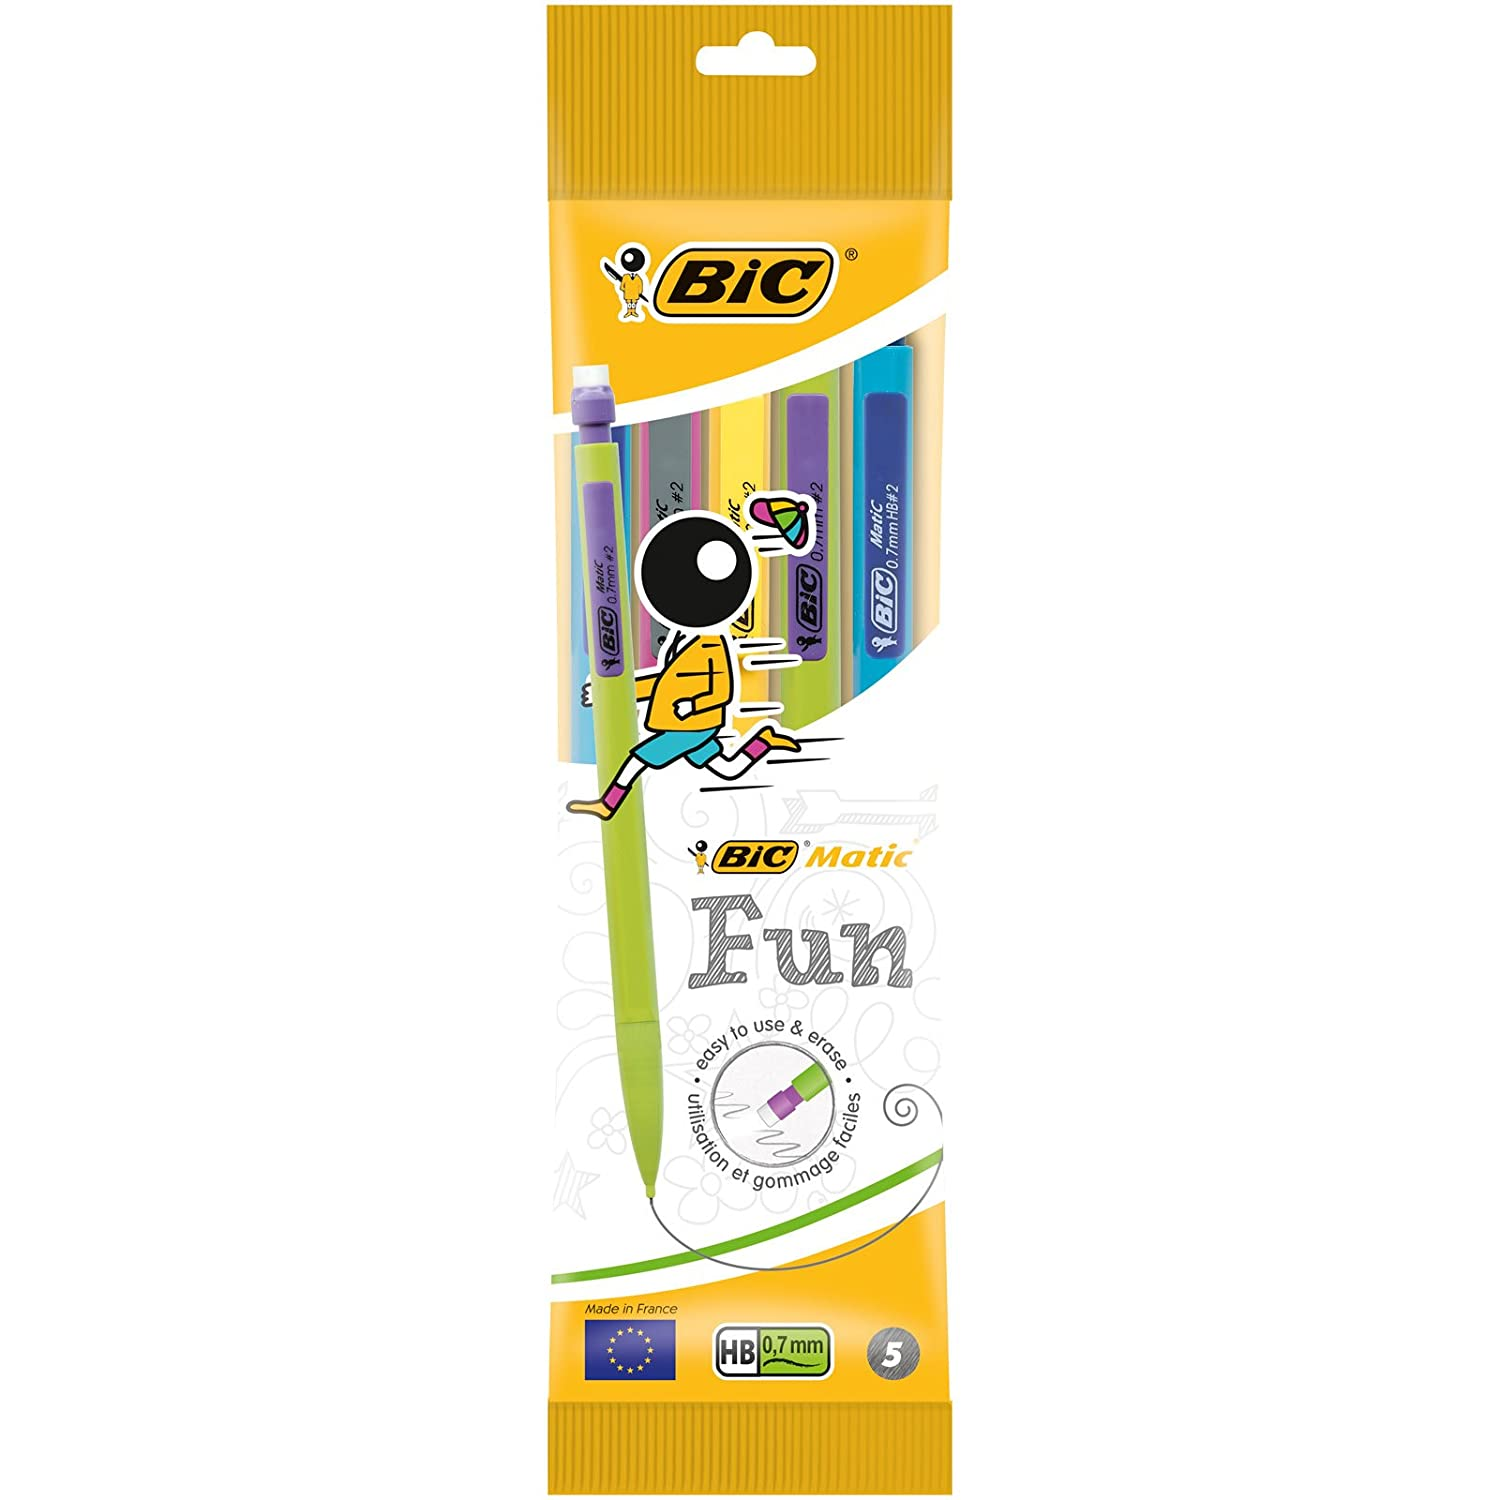 BIC Matic Fun 0.7mm HB Mechanical Pencil Pencils Pack of 5